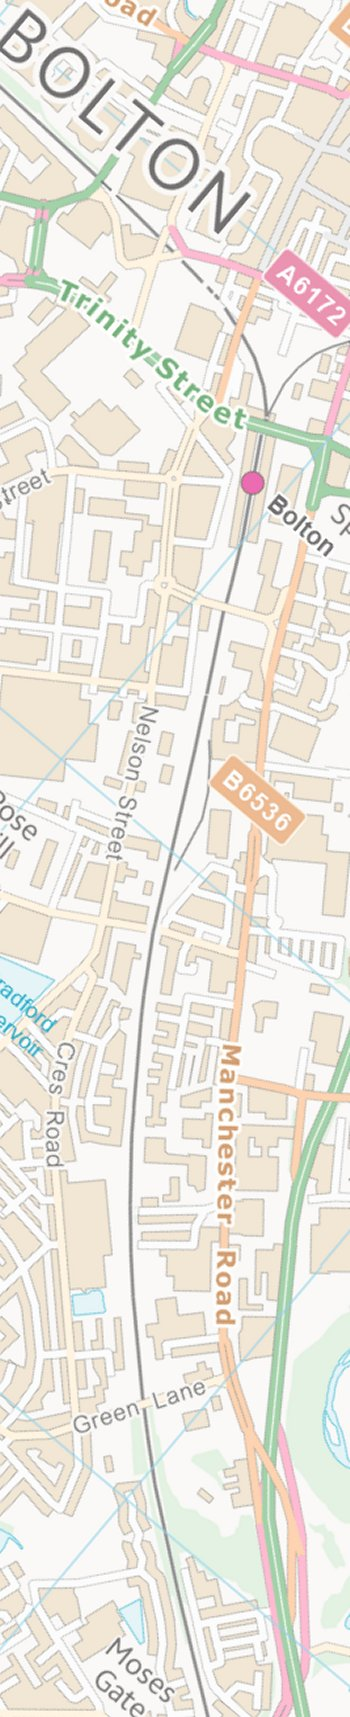 Section from the Ordnance Survey OpenSource mapping 2013 showing L&YR railway line from Bolton Trinity Street to Moses Gate railway station